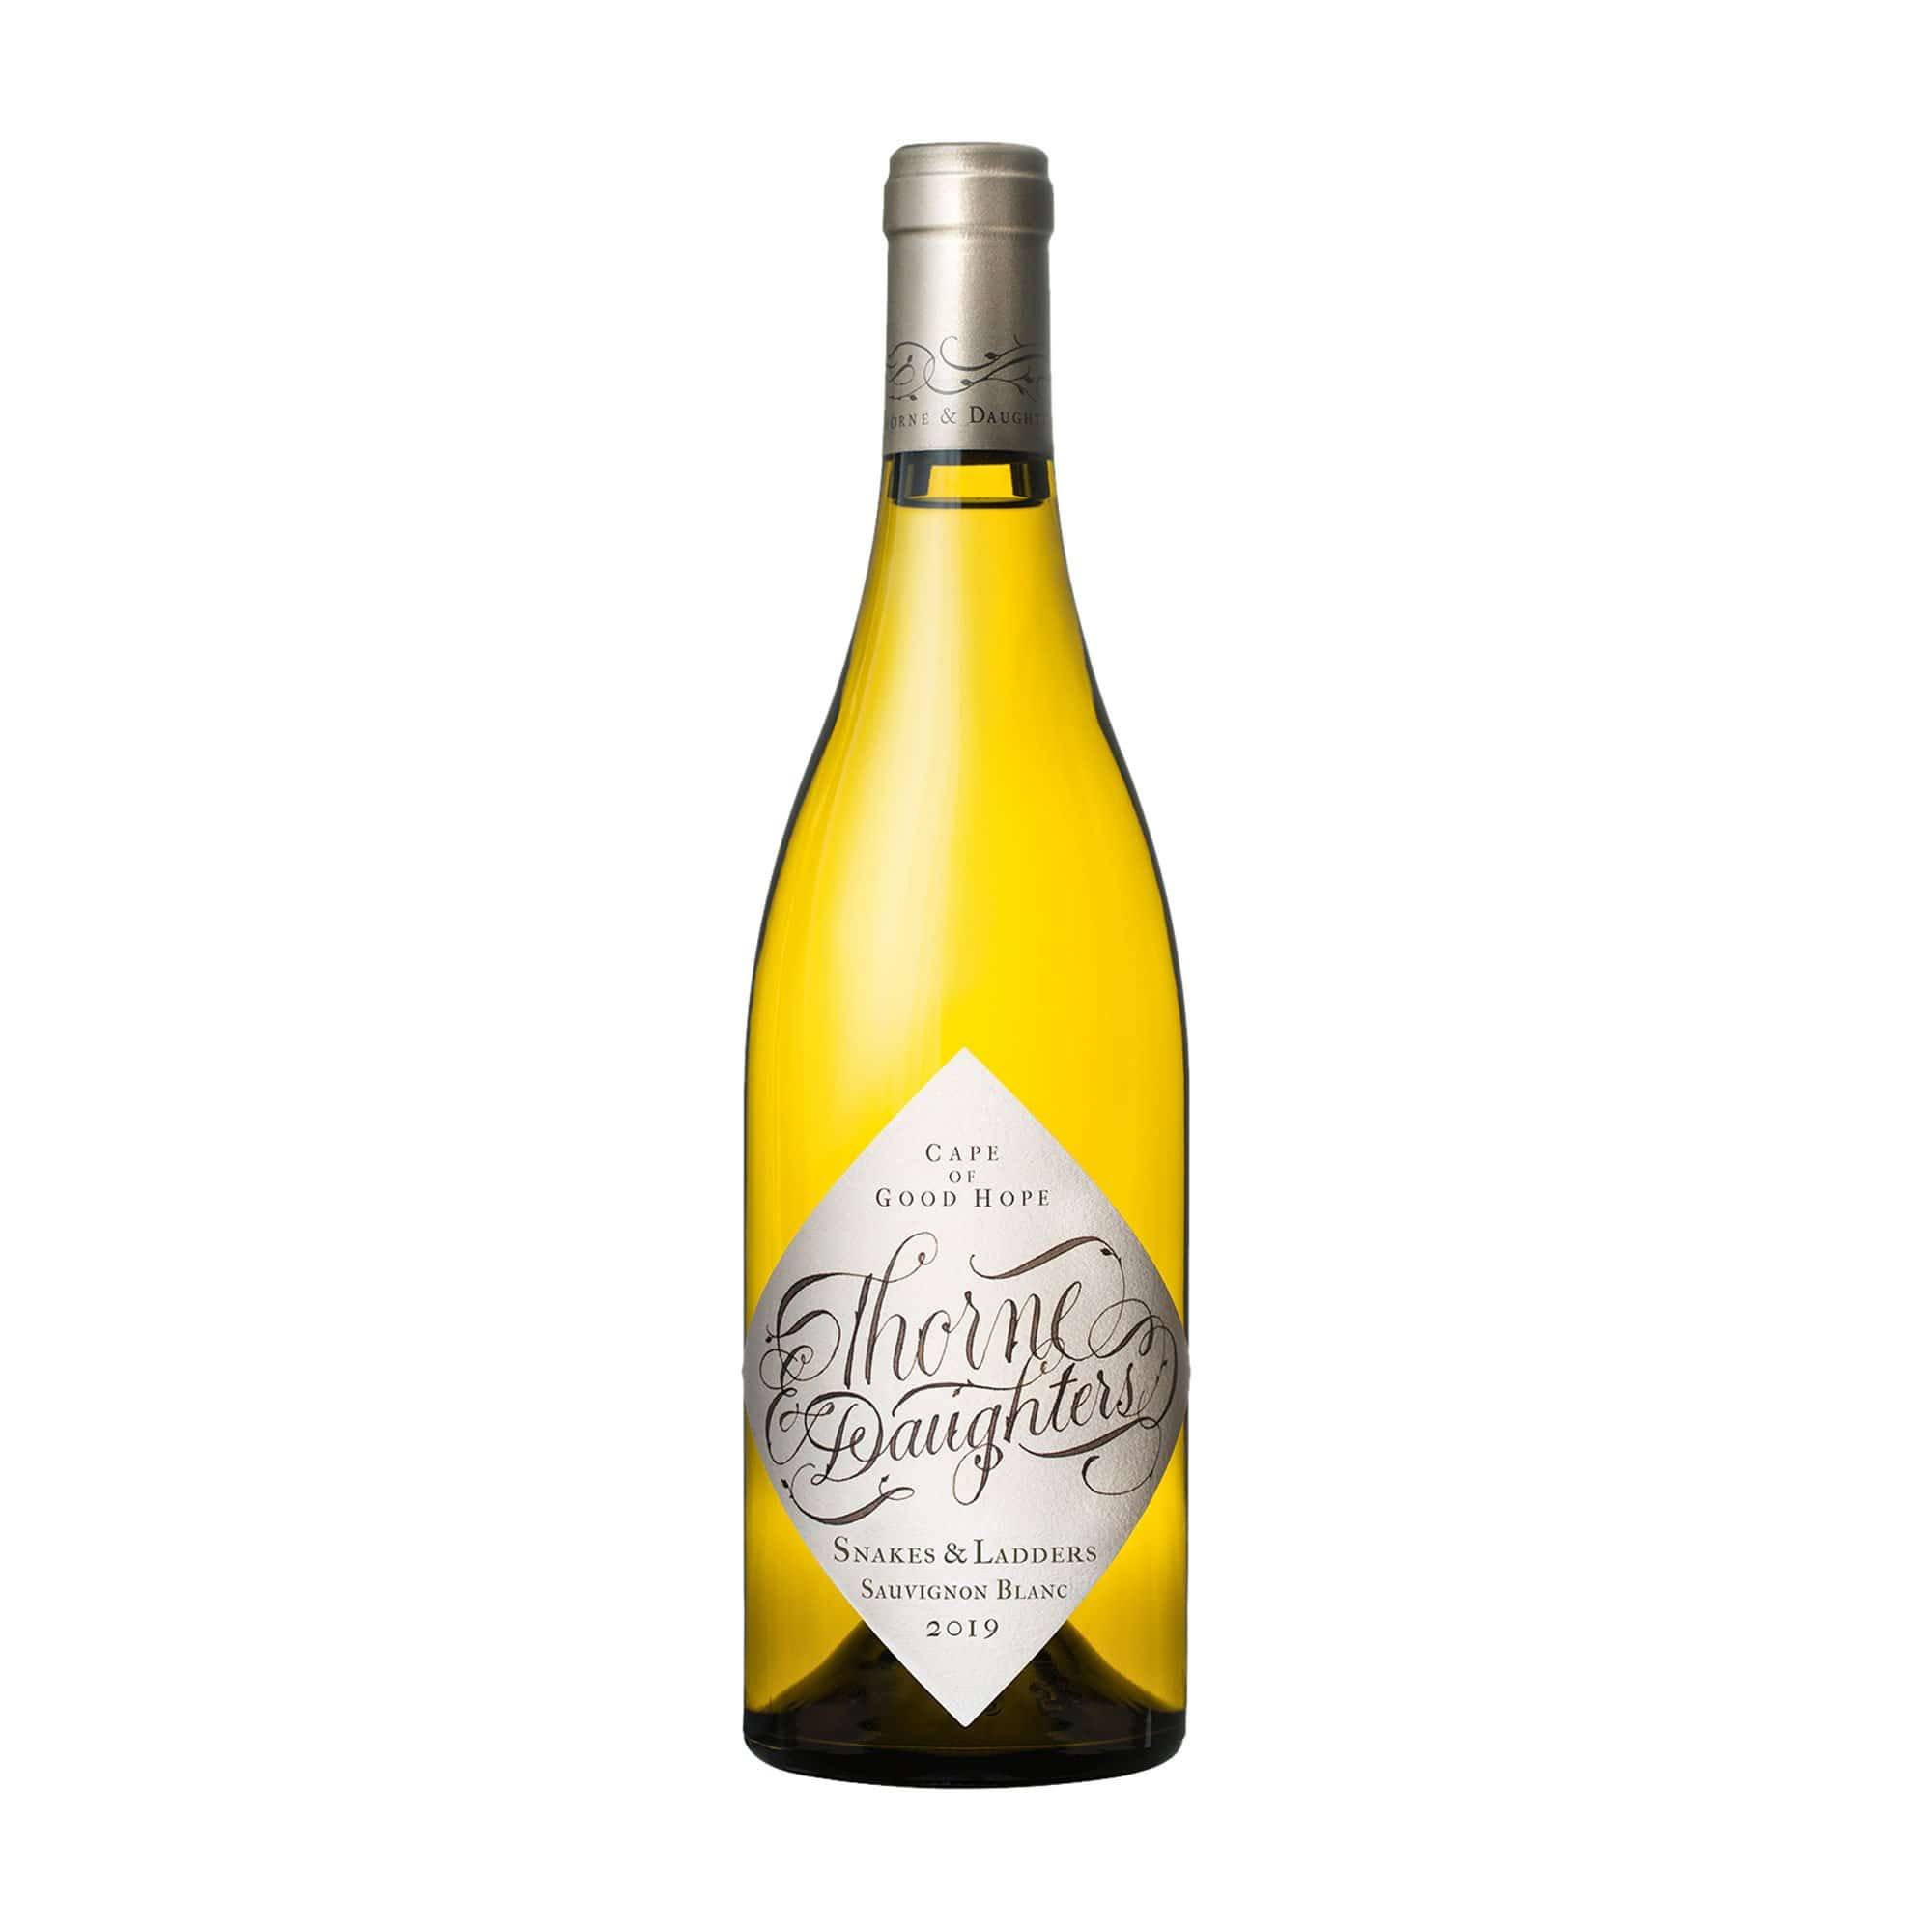 White Wine Thorne & Daughters Snakes & Ladders Sauvignon Blanc Western Cape 2019 (4531622182935)